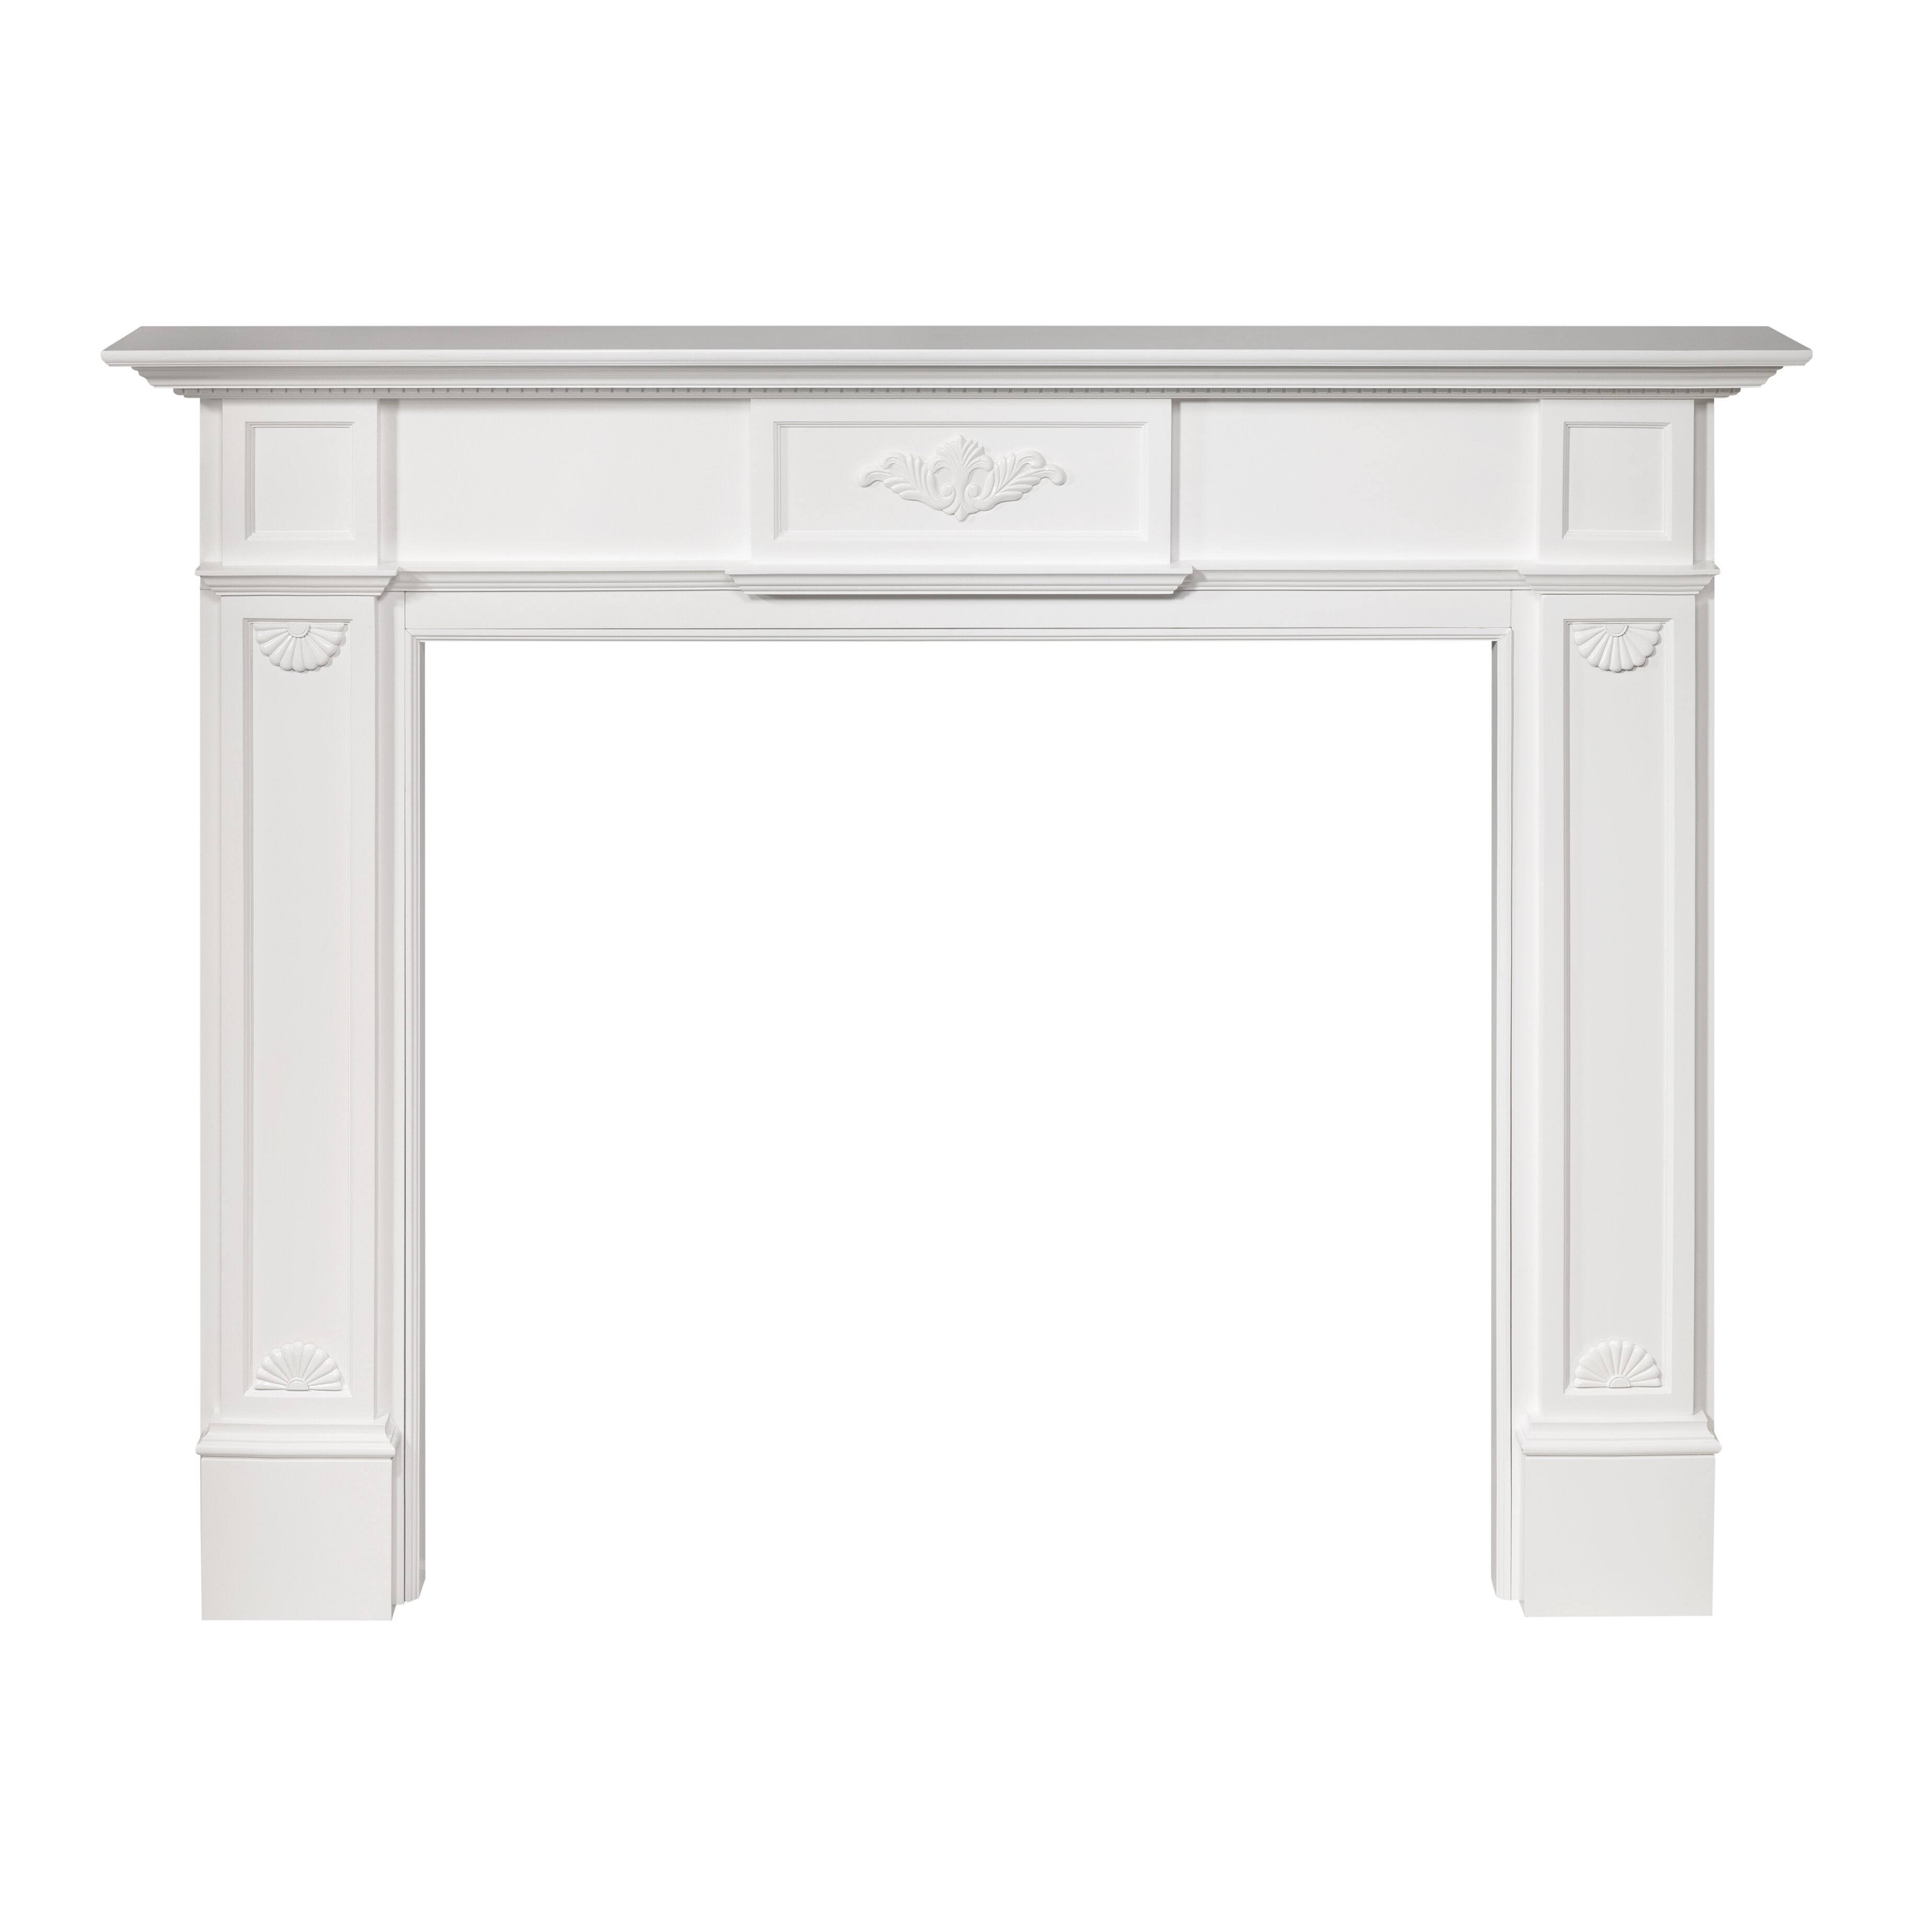 "Pearl Mantels Avondale Fireplace Surround: Pearl Mantels 56"" Monticello Fireplace Mantel Surround"